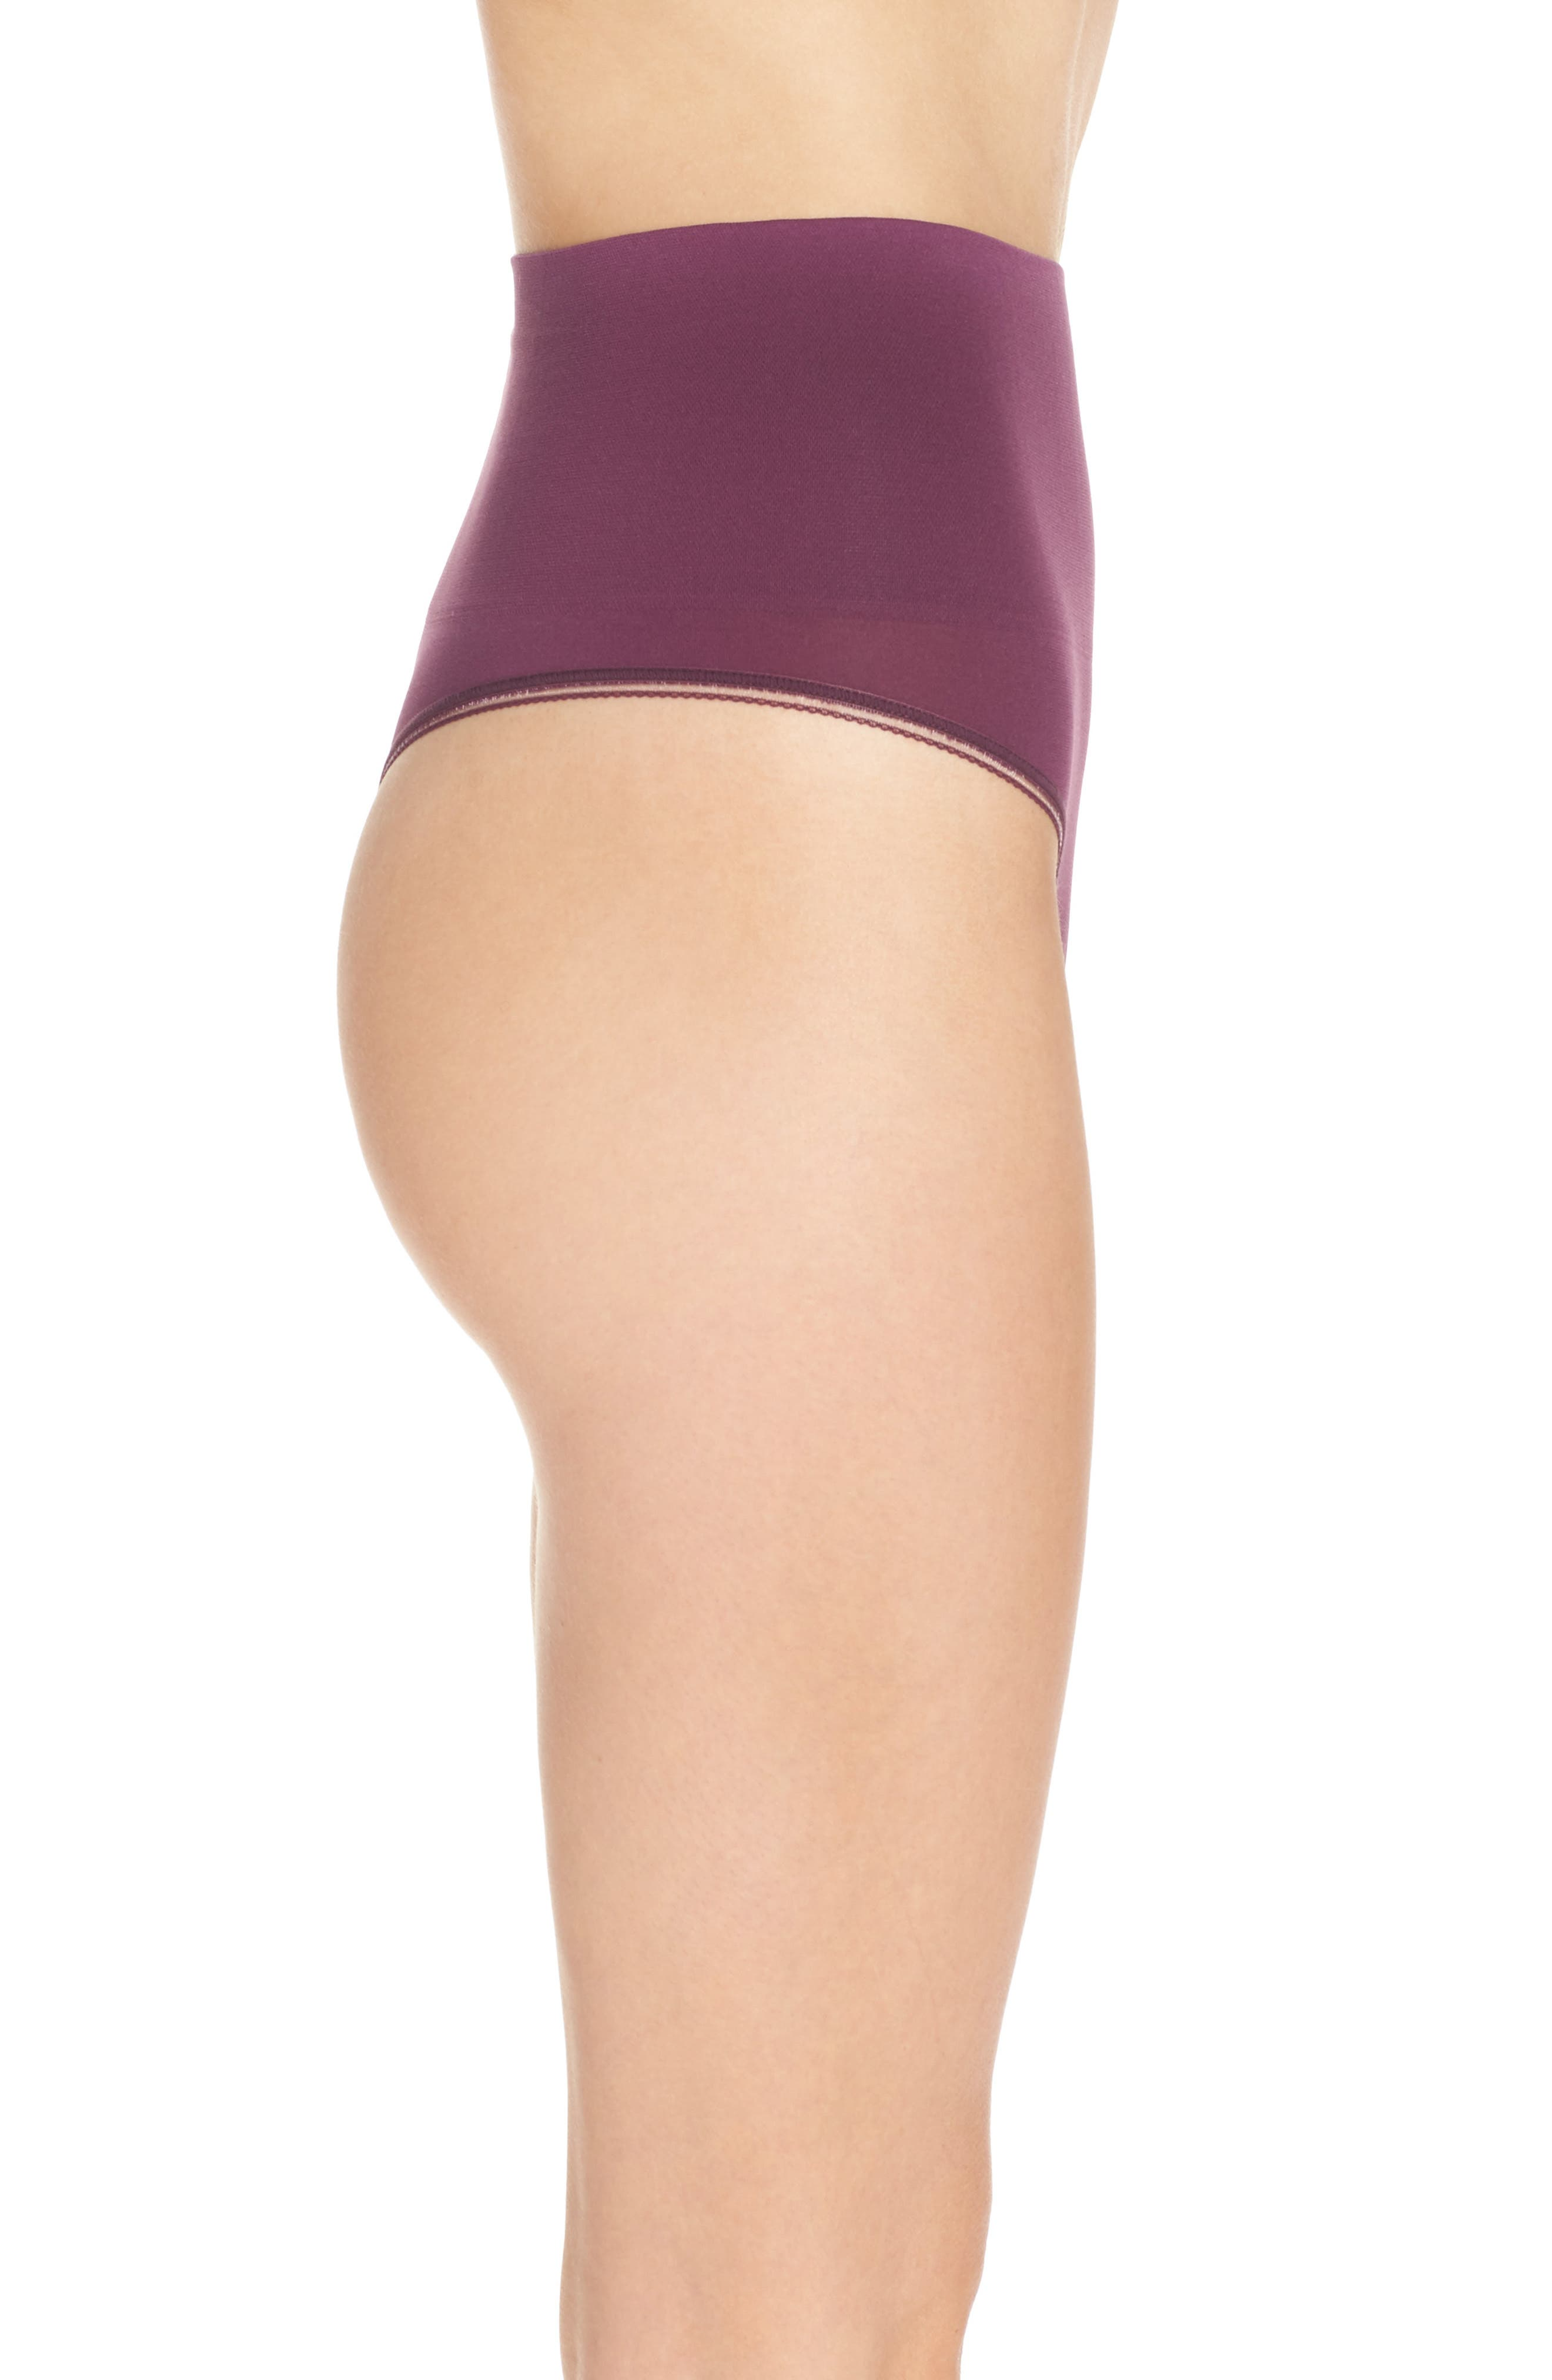 Alternate Image 3  - Yummie Ultralight Seamless Shaping Thong (2 for $30)